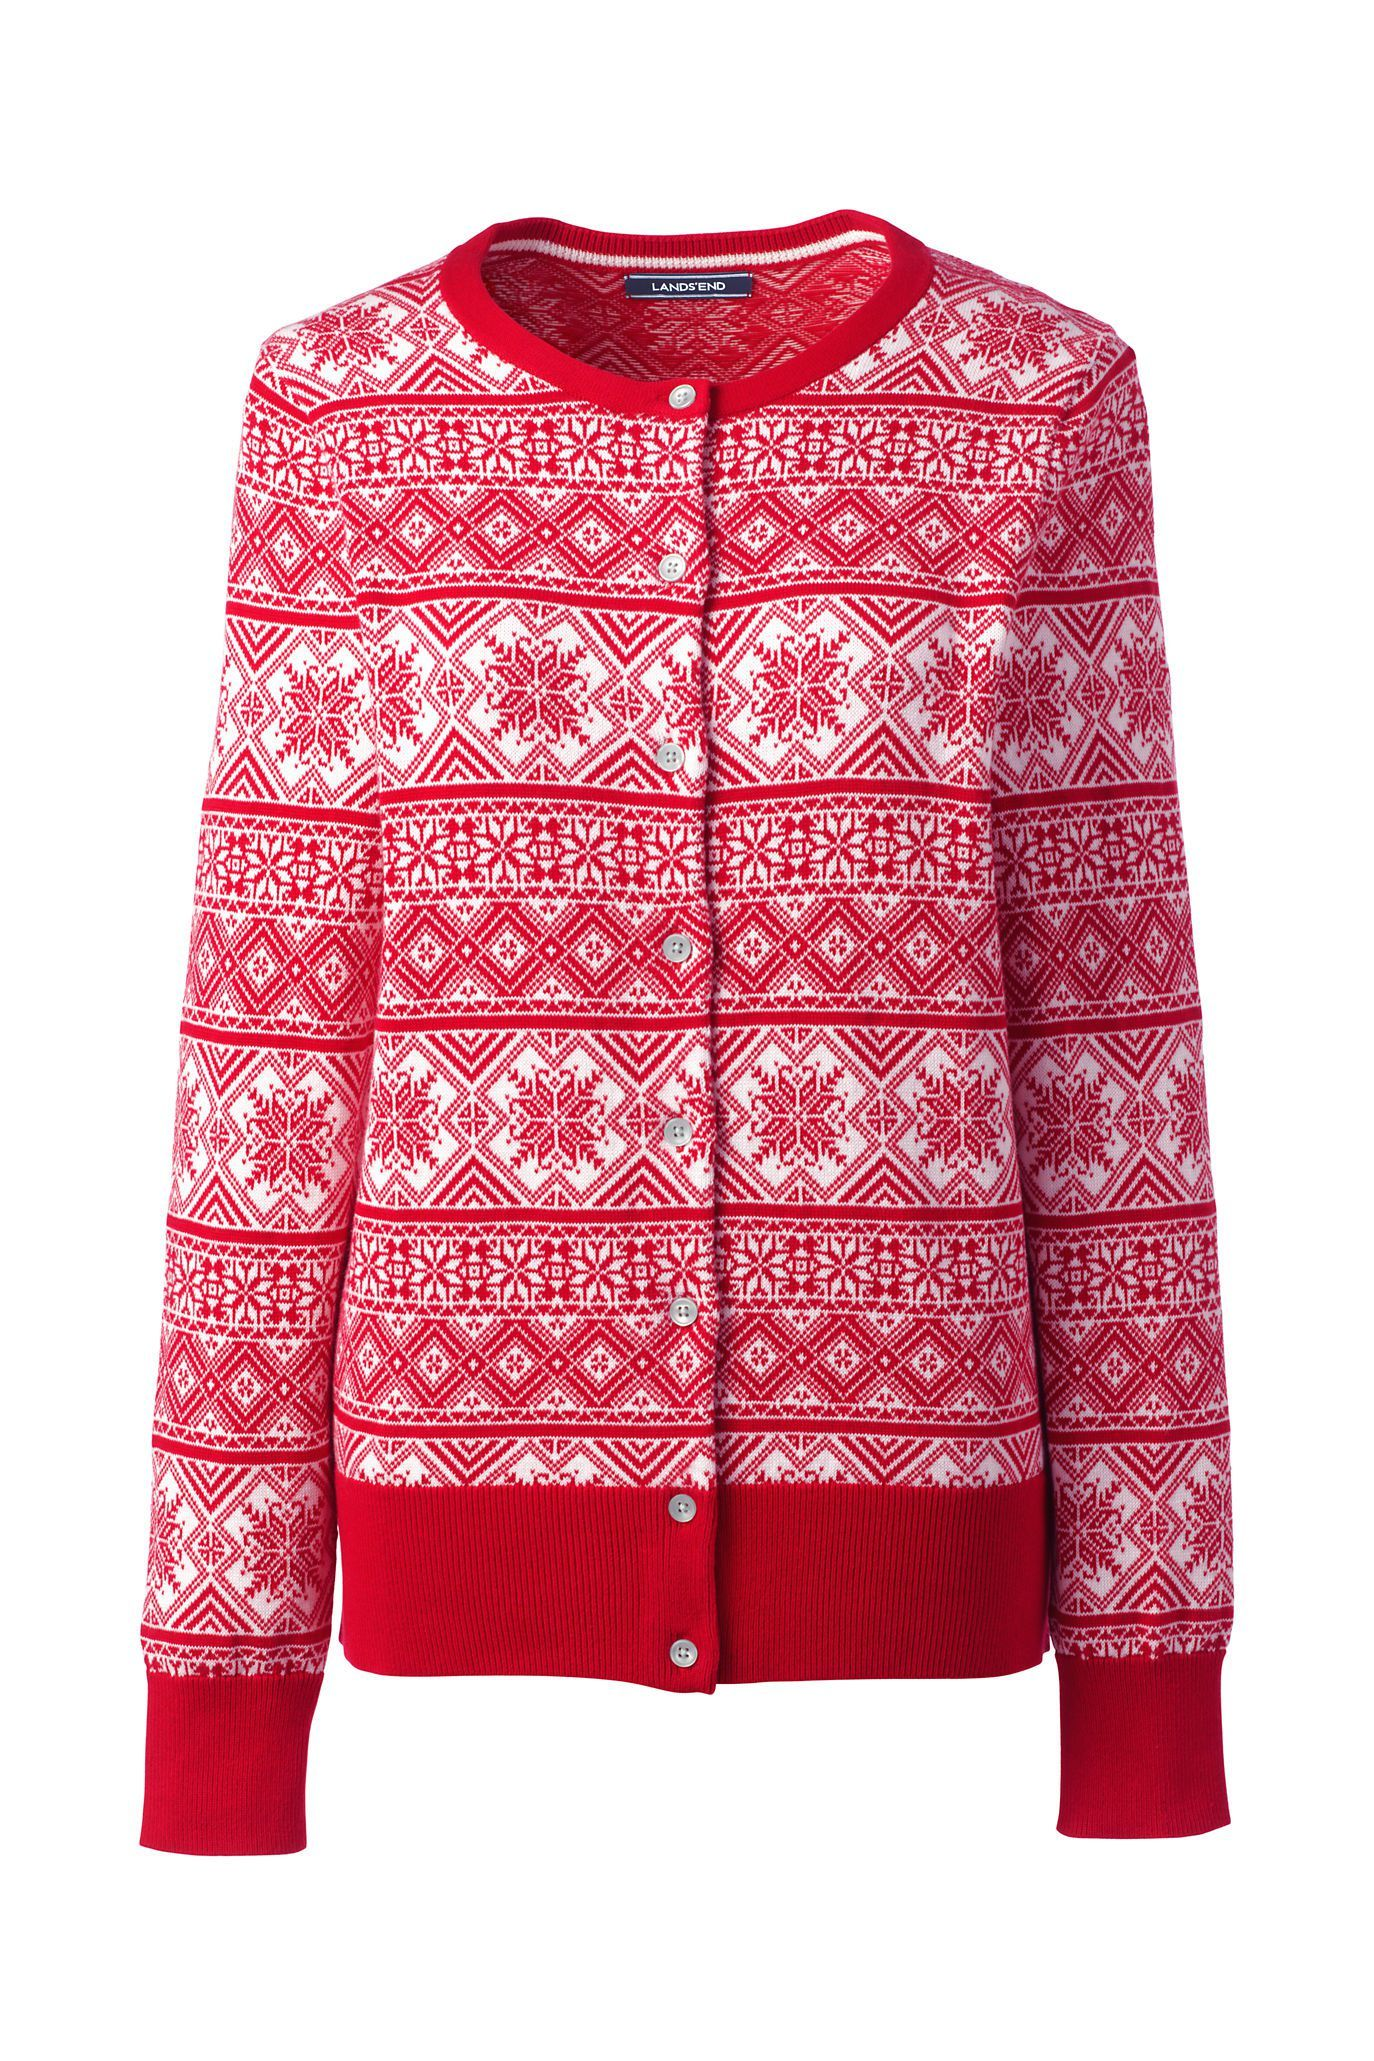 30+ Prettiest Christmas Sweaters - Cute and Stylish Holiday Sweaters